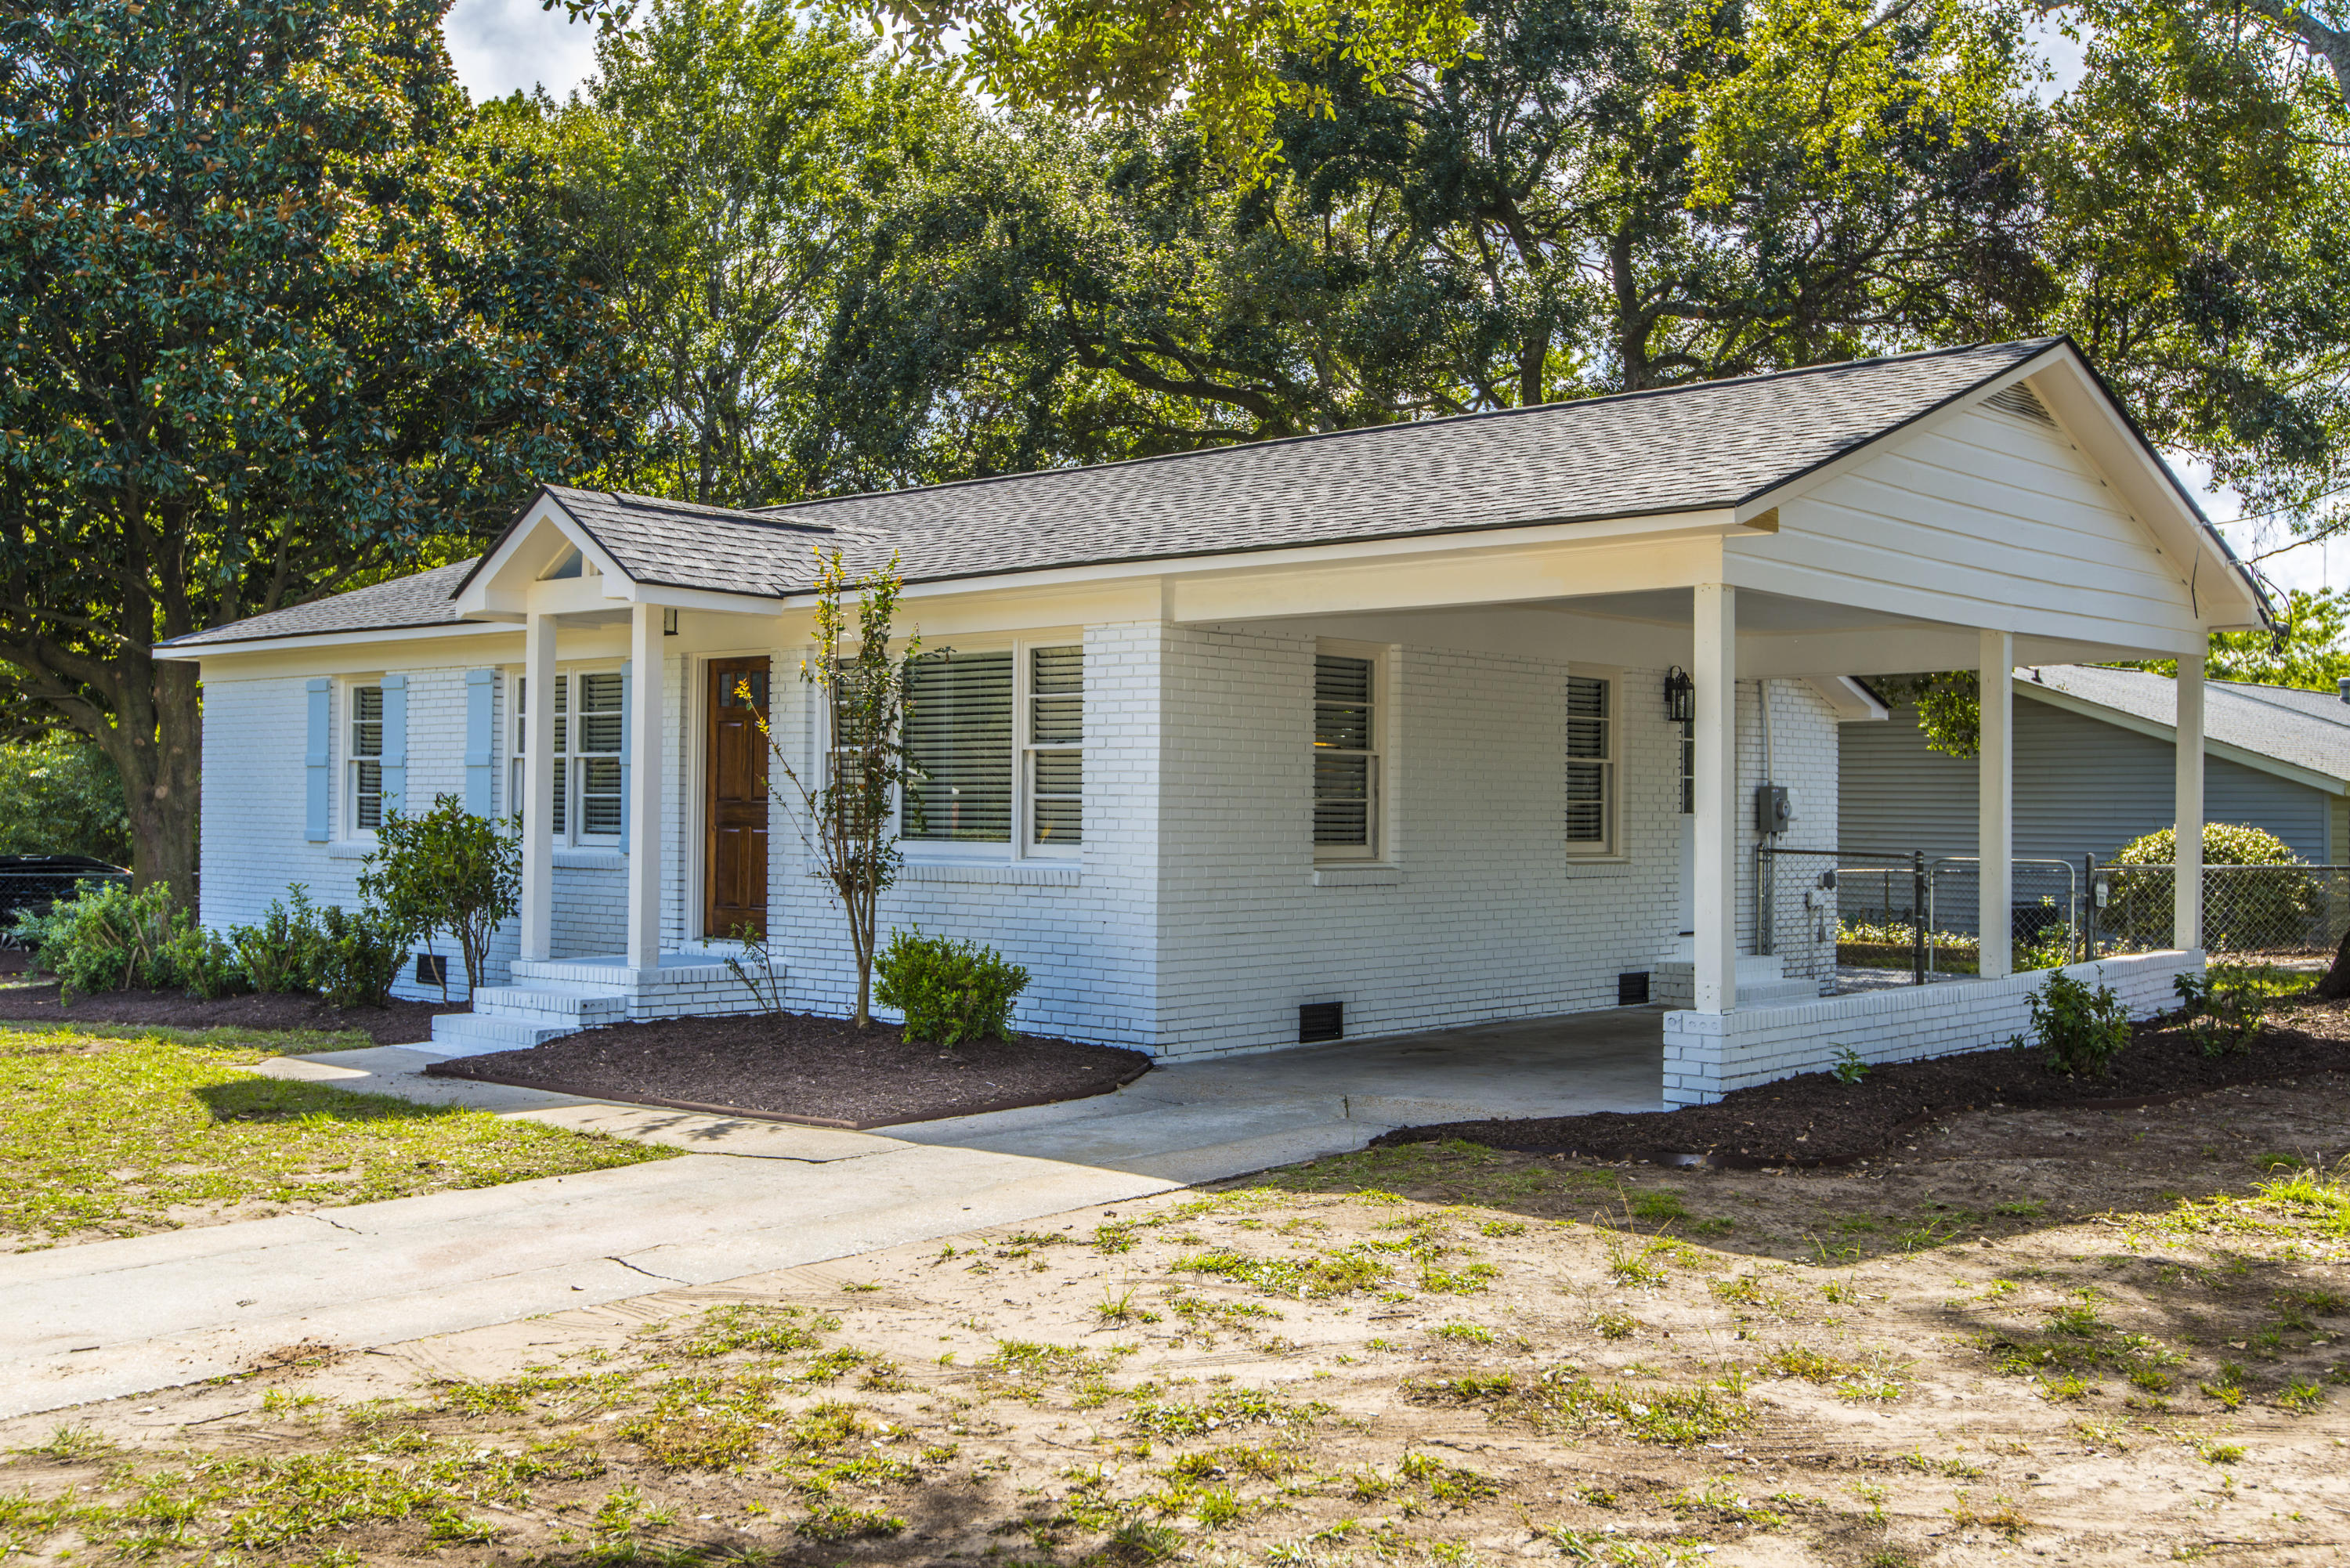 West Glow Homes For Sale - 1125 Crull, Charleston, SC - 3